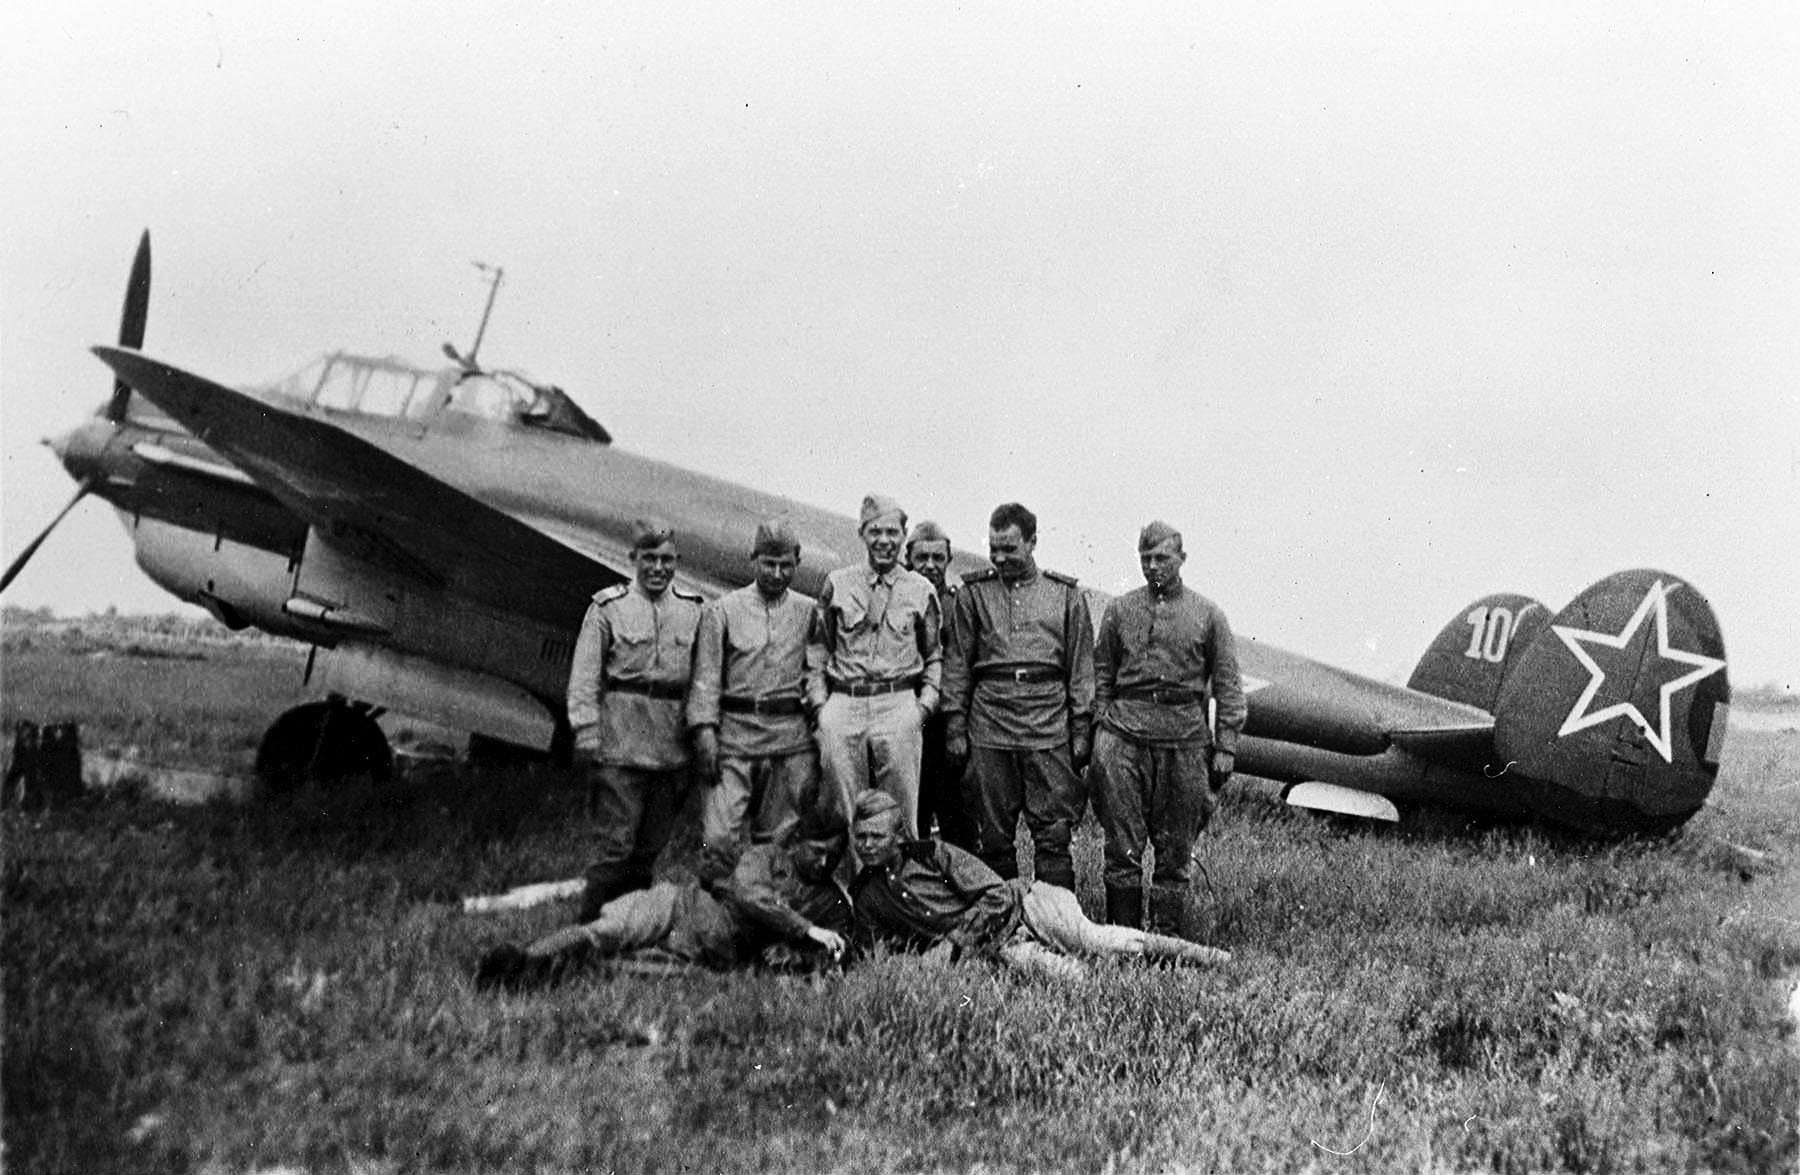 Detente Soviet pilots with an American GI pose for a photo against a Pe 2 Poltava June 1944 01